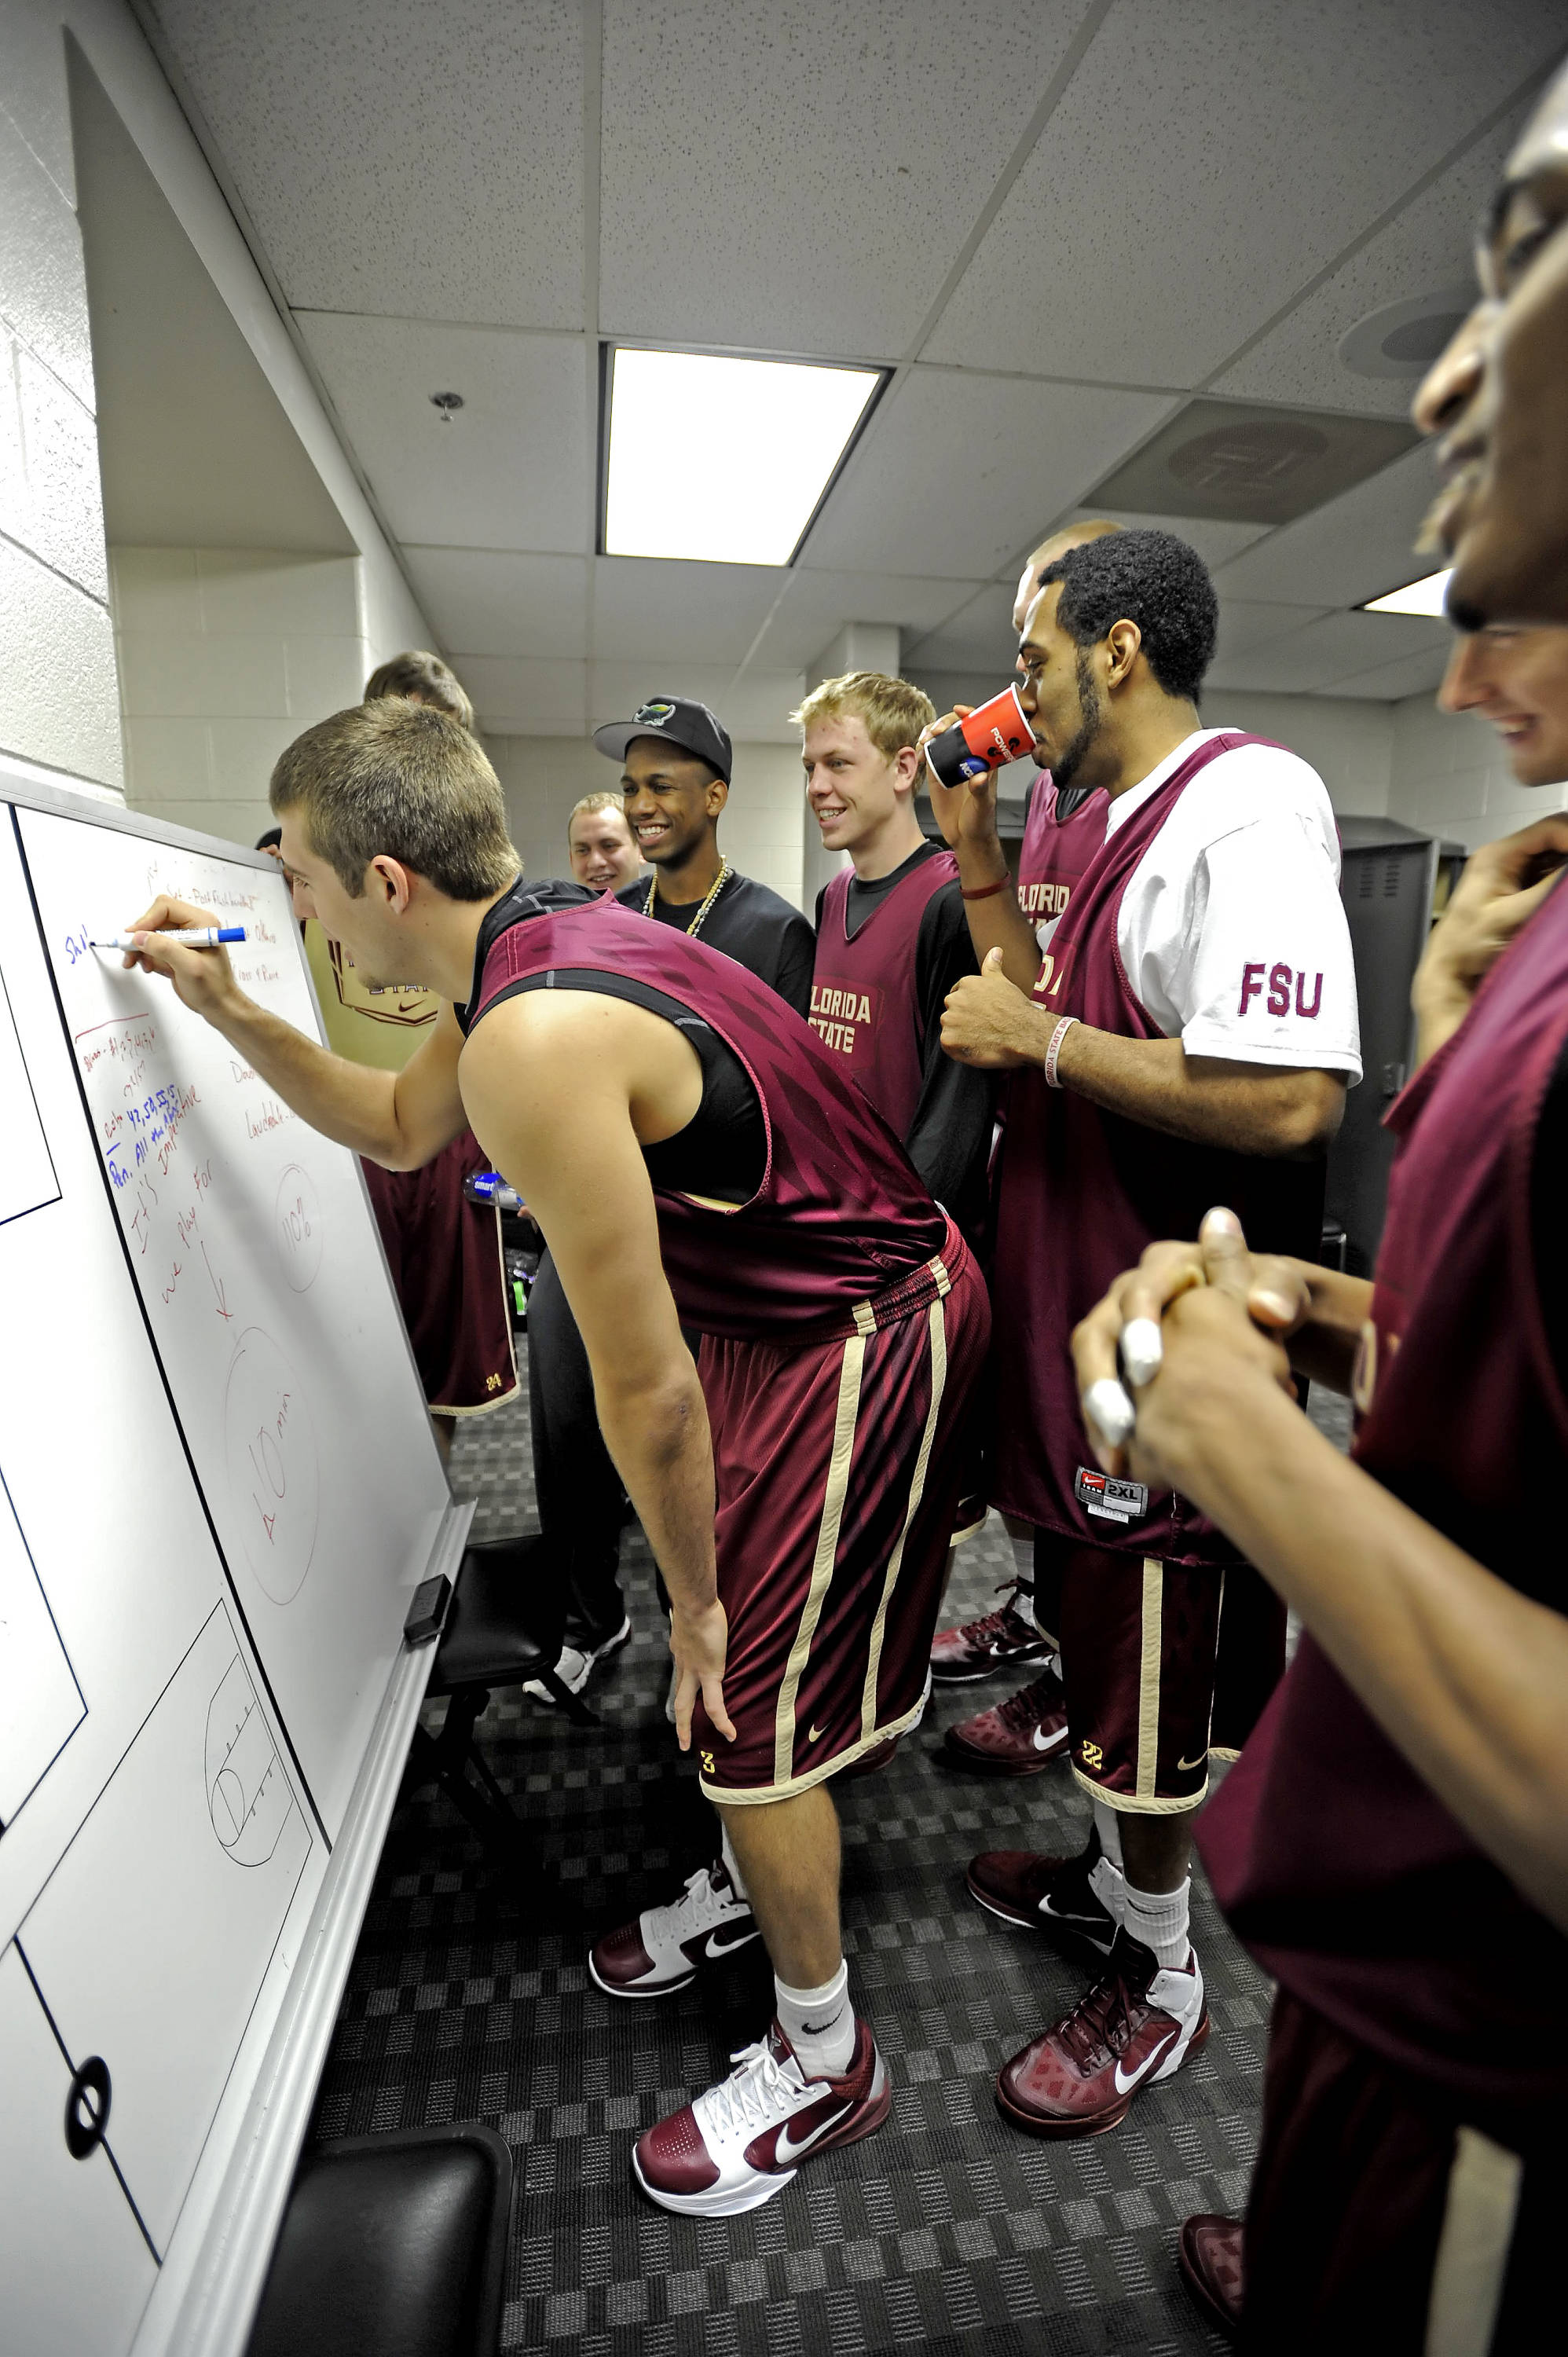 Players write on the white board in the locker room